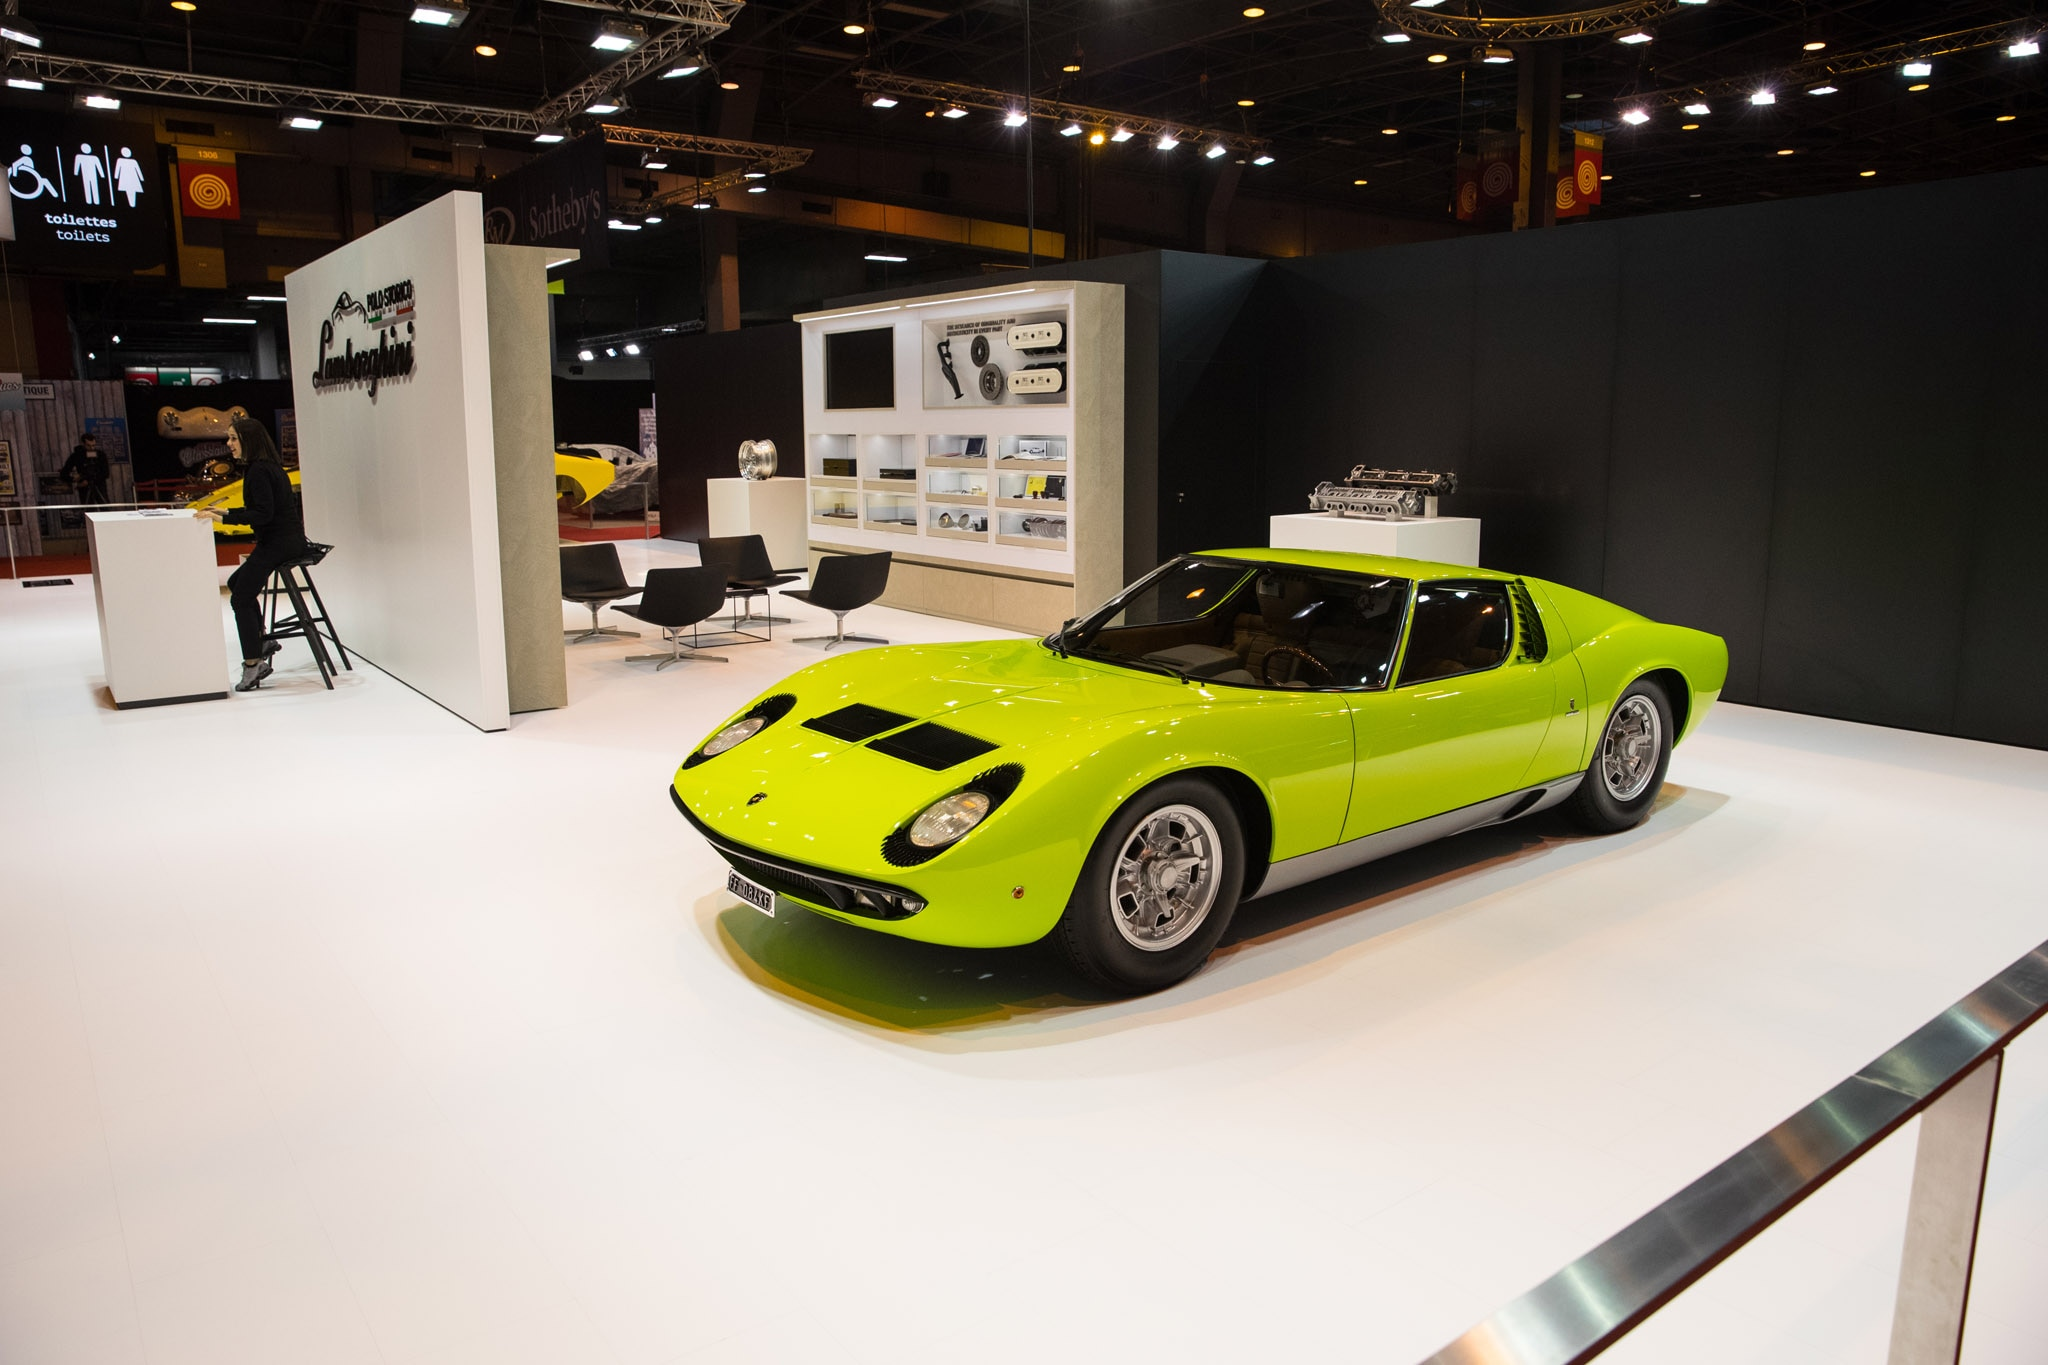 Wm 2018 Retromobile 24